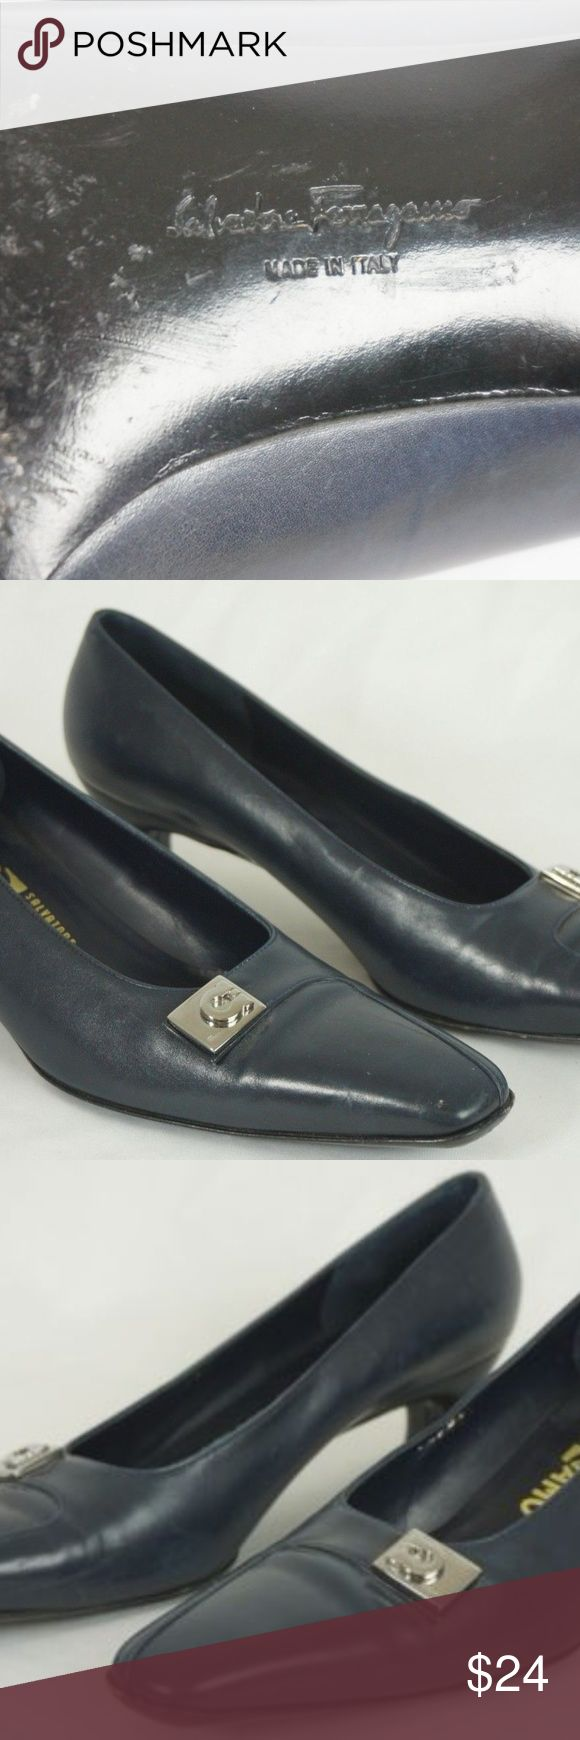 """Salvatore Ferragamo Navy 8 N Kitten Heels Salvatore Ferragamo ladies shoes Size 8 narrow      (inside of shoe stamped 8 2A, width at ball is 3"""") Navy blue 1 5/8"""" kitten heel Scuffing and wear on outsoles and toes Structurally very sound Salvatore Ferragamo Shoes Heels"""